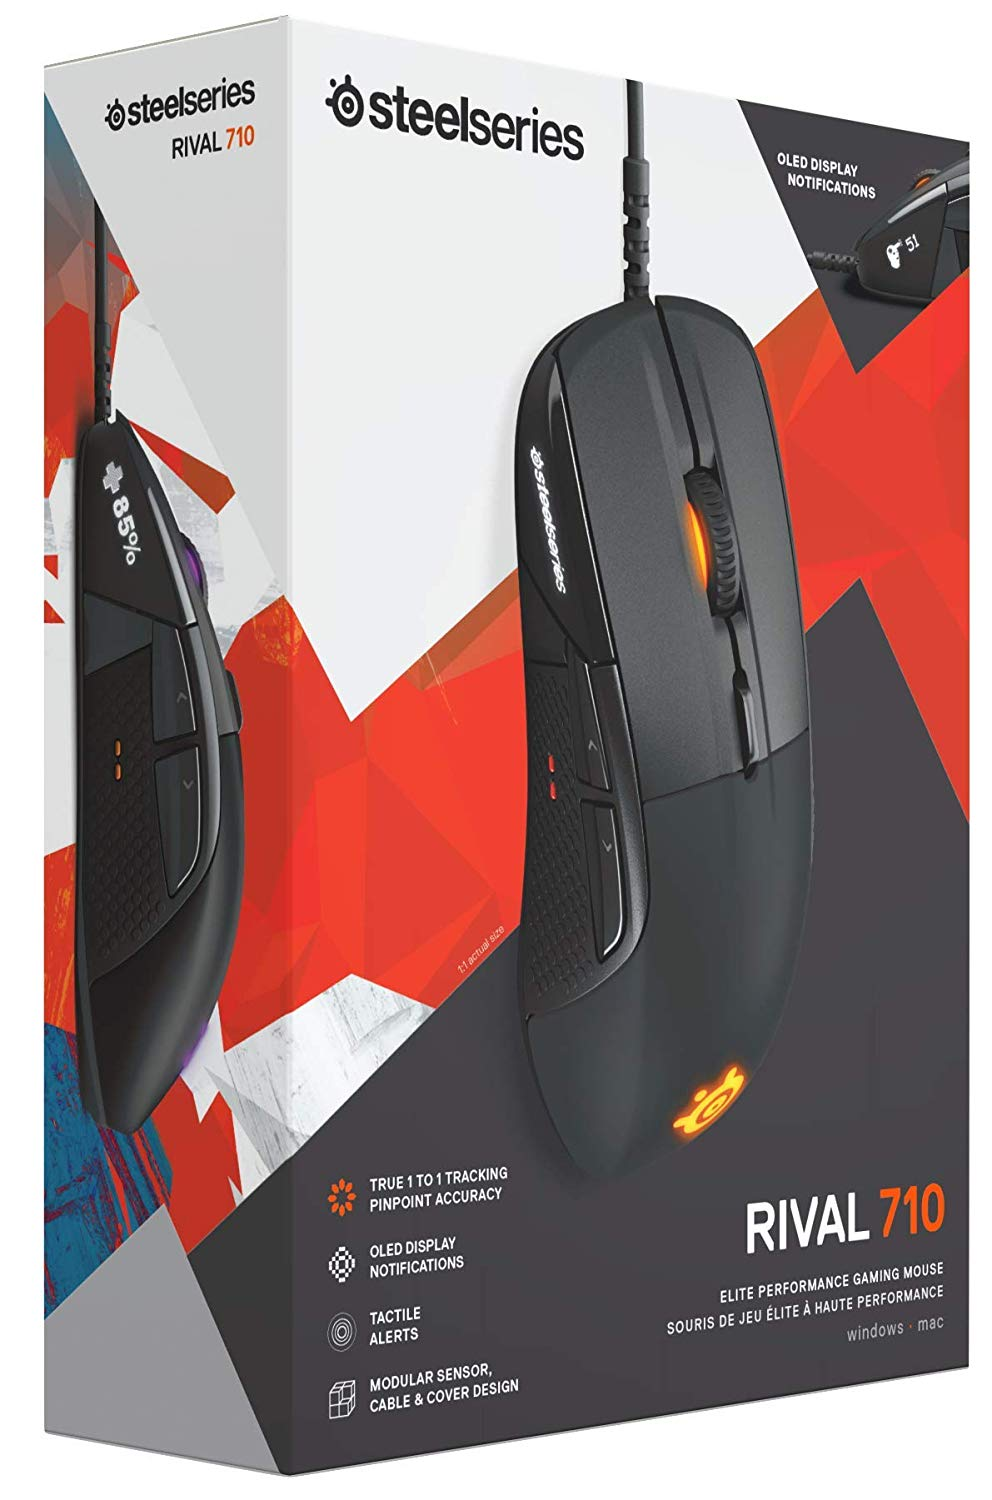 SteelSeries Rival 710  Gaming Maus 16.000 CPI TrueMove3 Optical Sensor OLED Display  haptisches Feedback RGB Beleuchtung-in Mice from Computer & Office    1